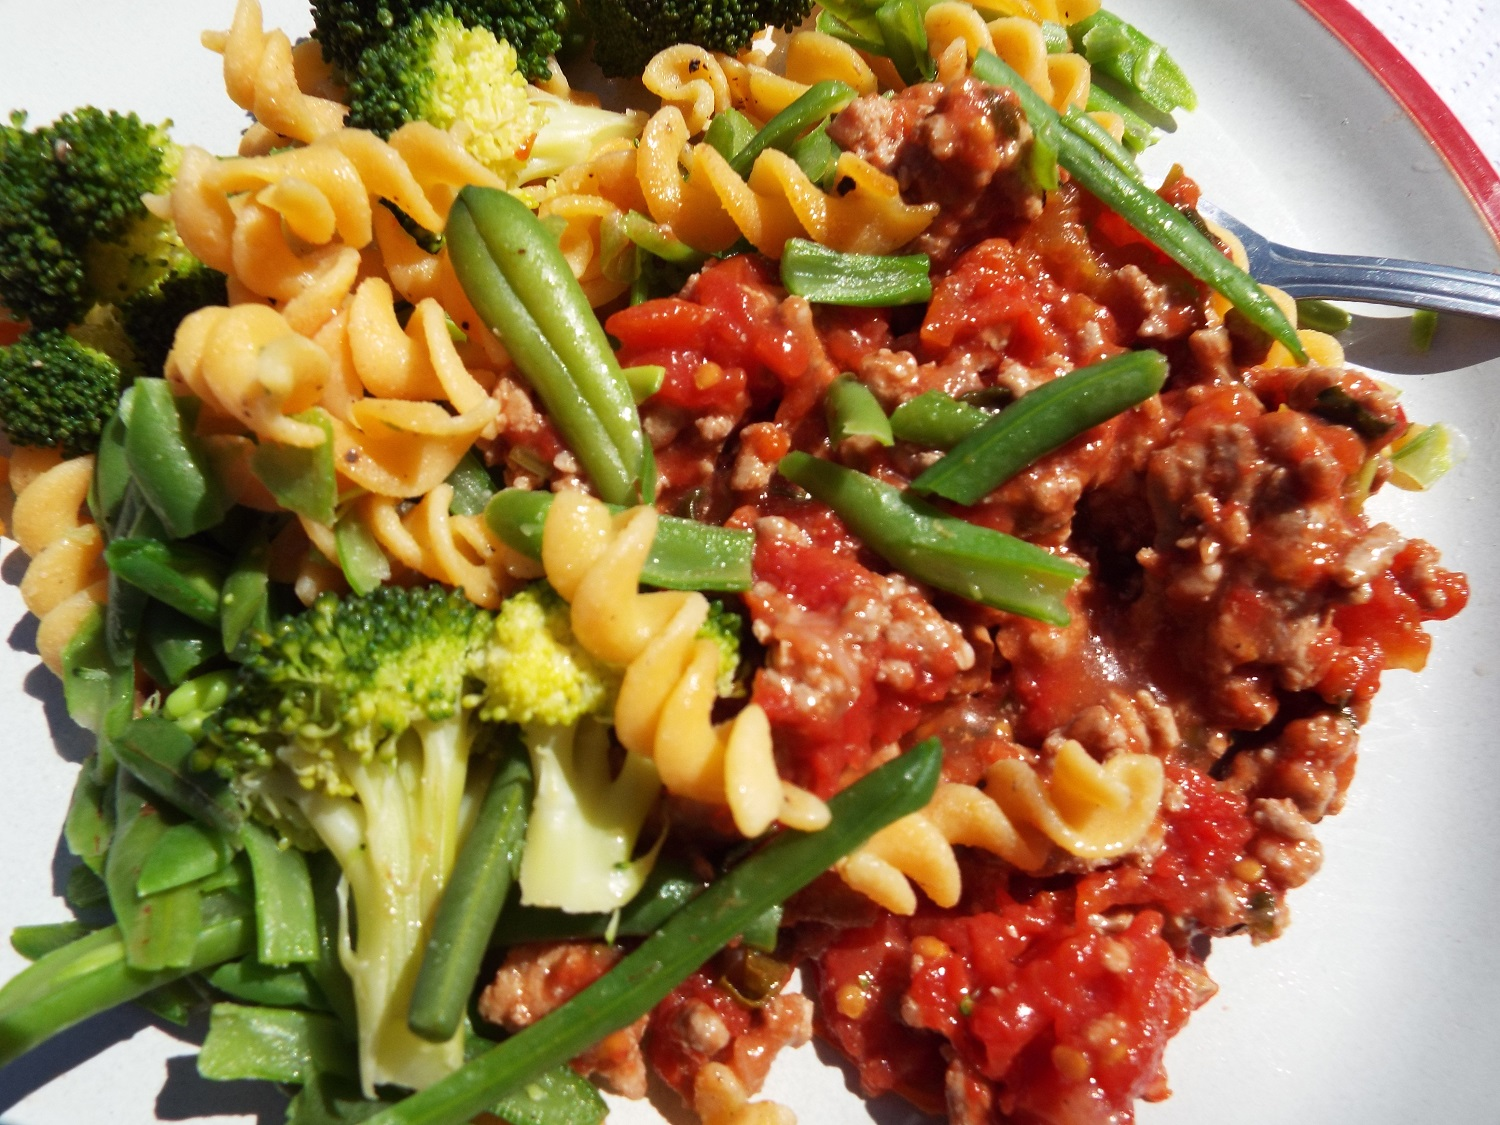 Red lentil pasta with green veg (here, green beans and broccoli) with turkey mince bolognese - replace meat with mushrooms as required